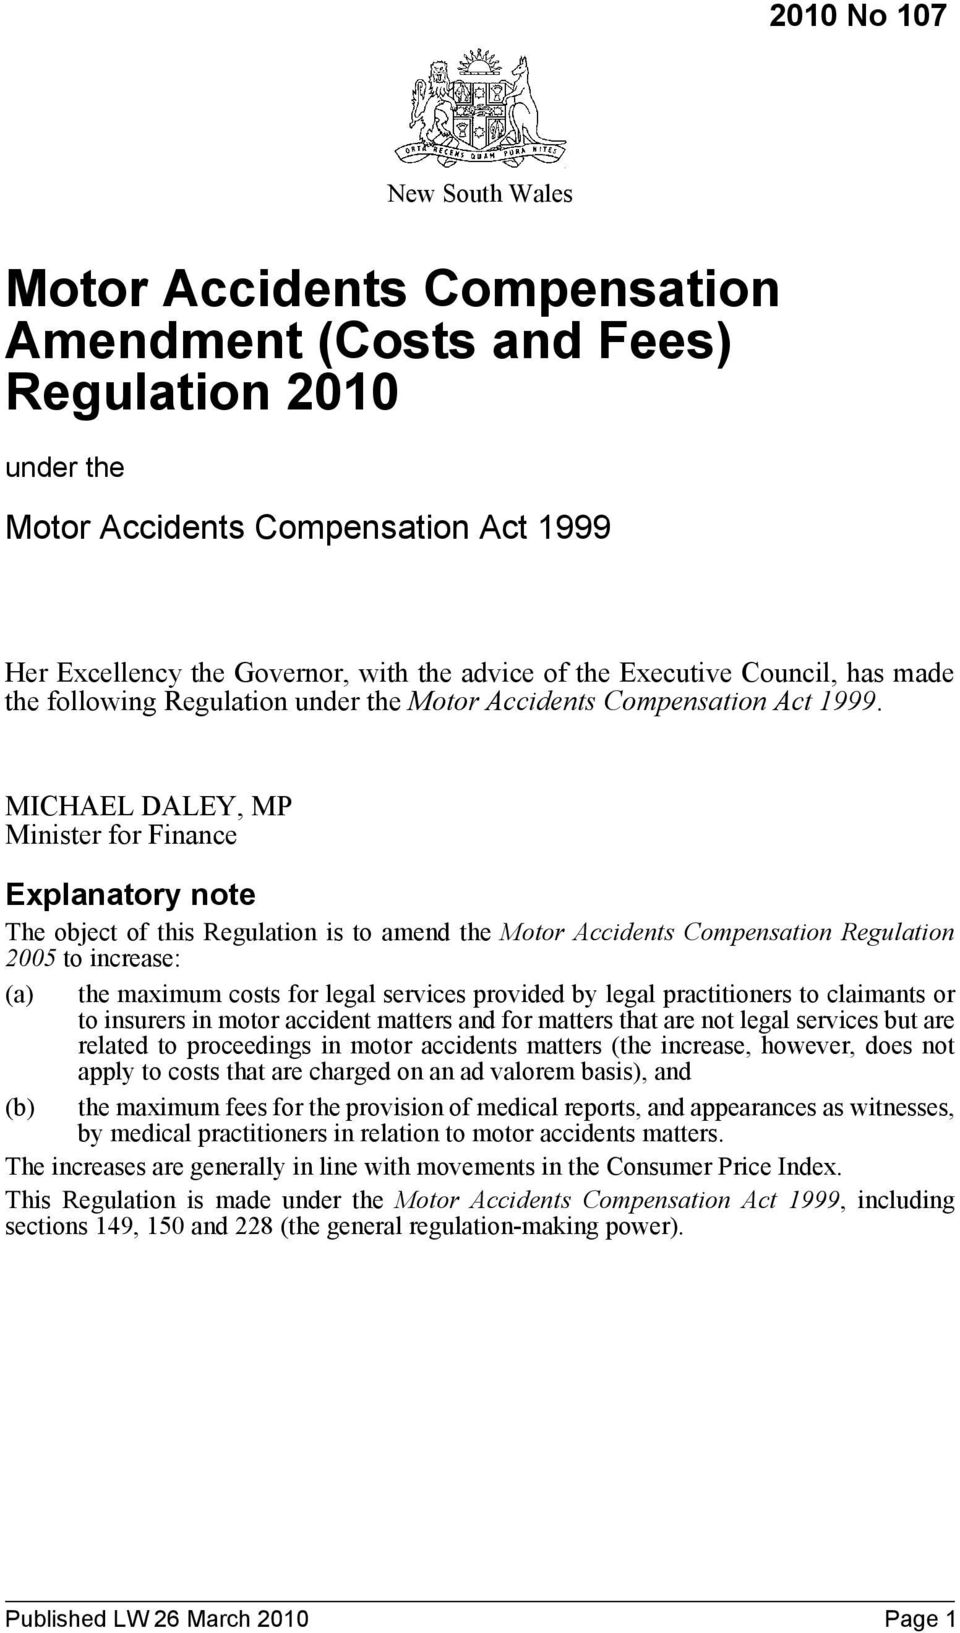 MICHAEL DALEY, MP Minister for Finance Explanatory note The object of this Regulation is to amend the Motor Accidents Compensation Regulation 2005 to increase: (a) the maximum costs for legal